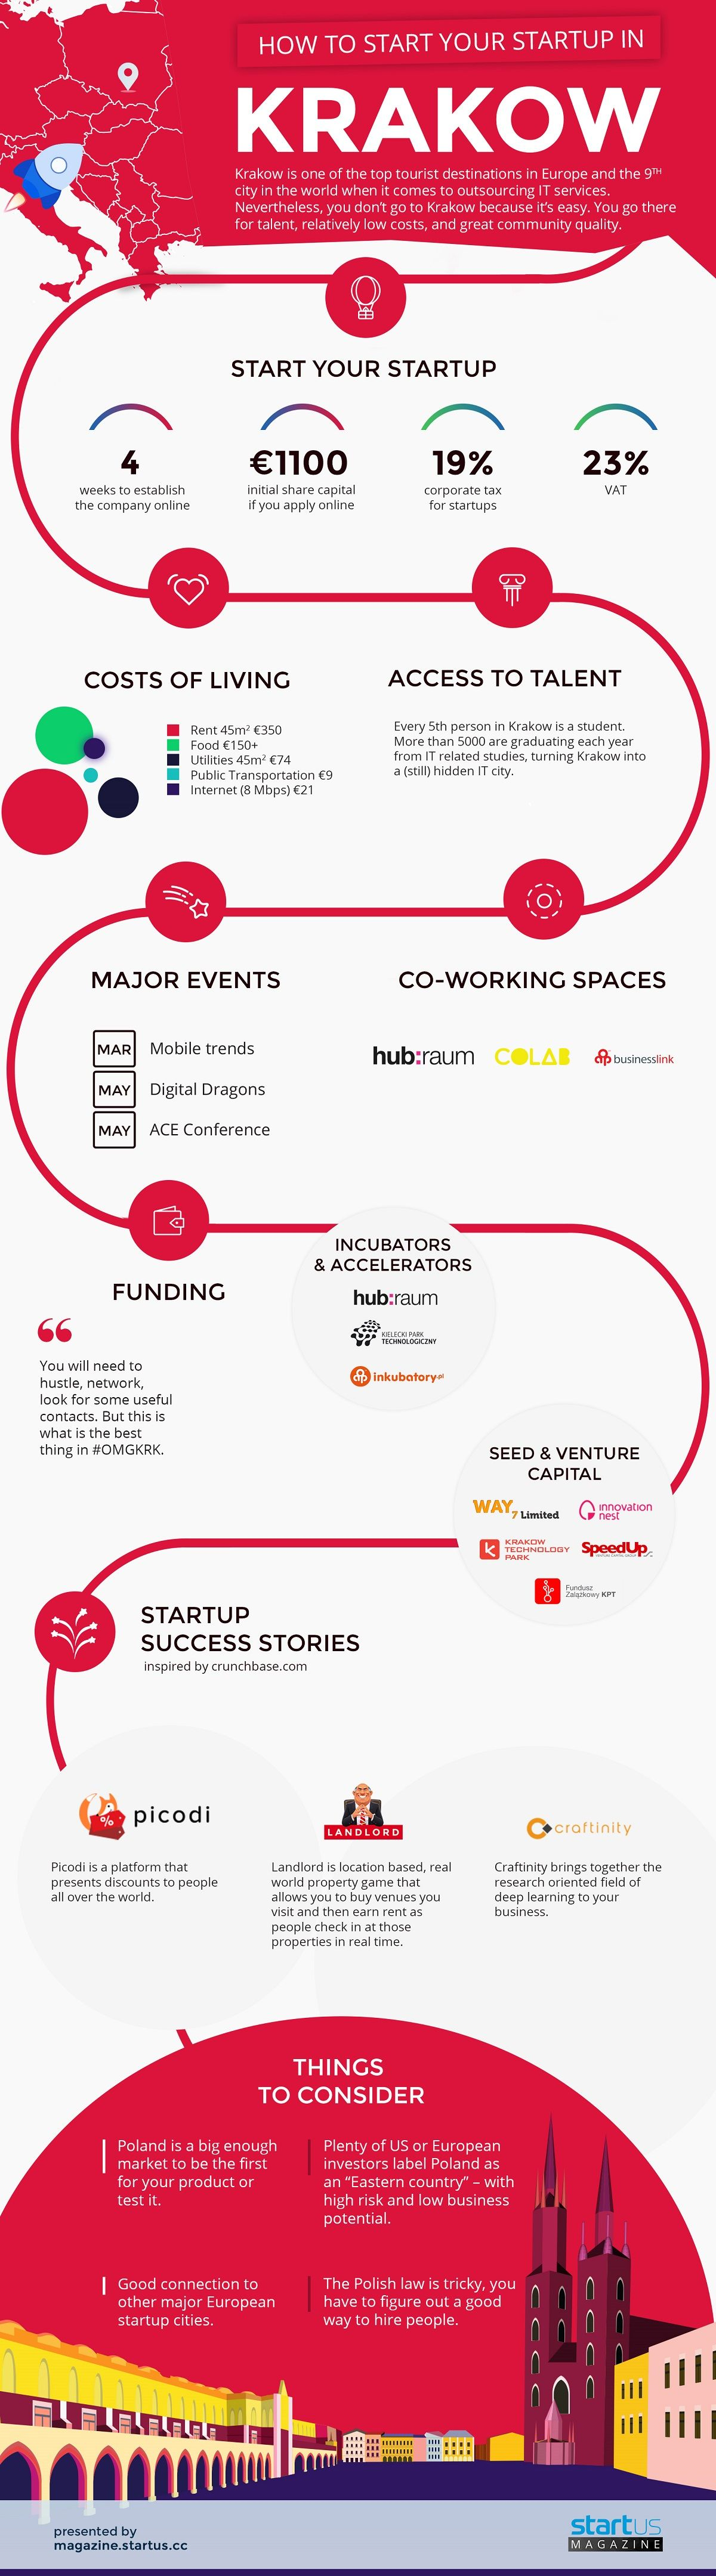 How To Start Your Startup In Krakow #Infographic